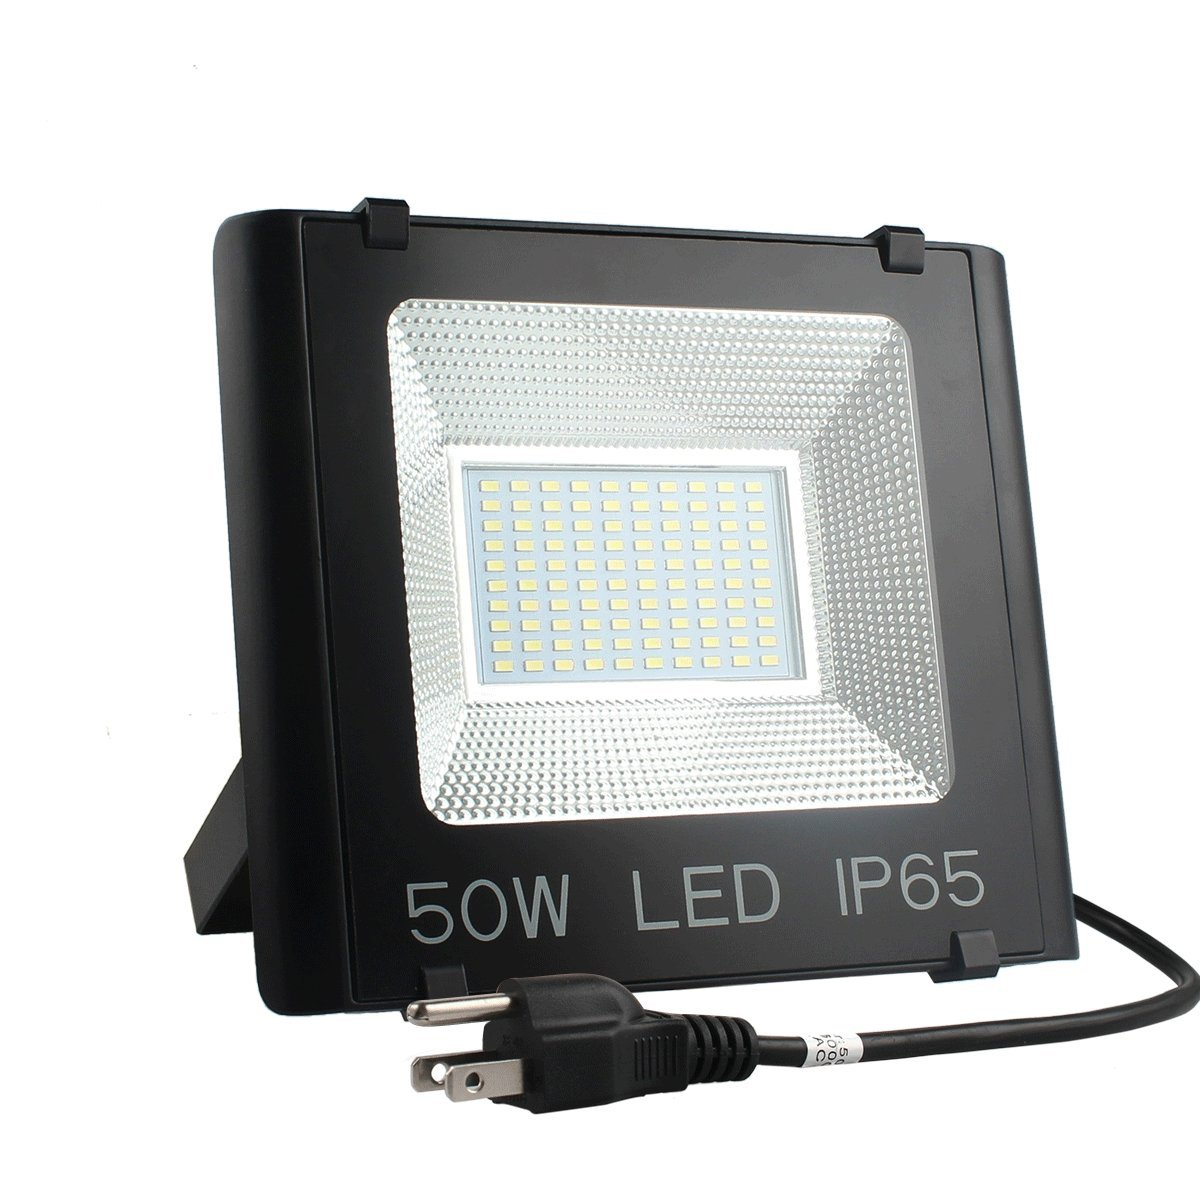 Betorcy 50W LED Flood Light Outdoor, IP65 Waterproof, (500W Equivalent), 5250lm 6500K Daylight White, Super Bright Security Lights, Landscape Lamp, For Home, Yard, Garage, Street, US 3-Plug